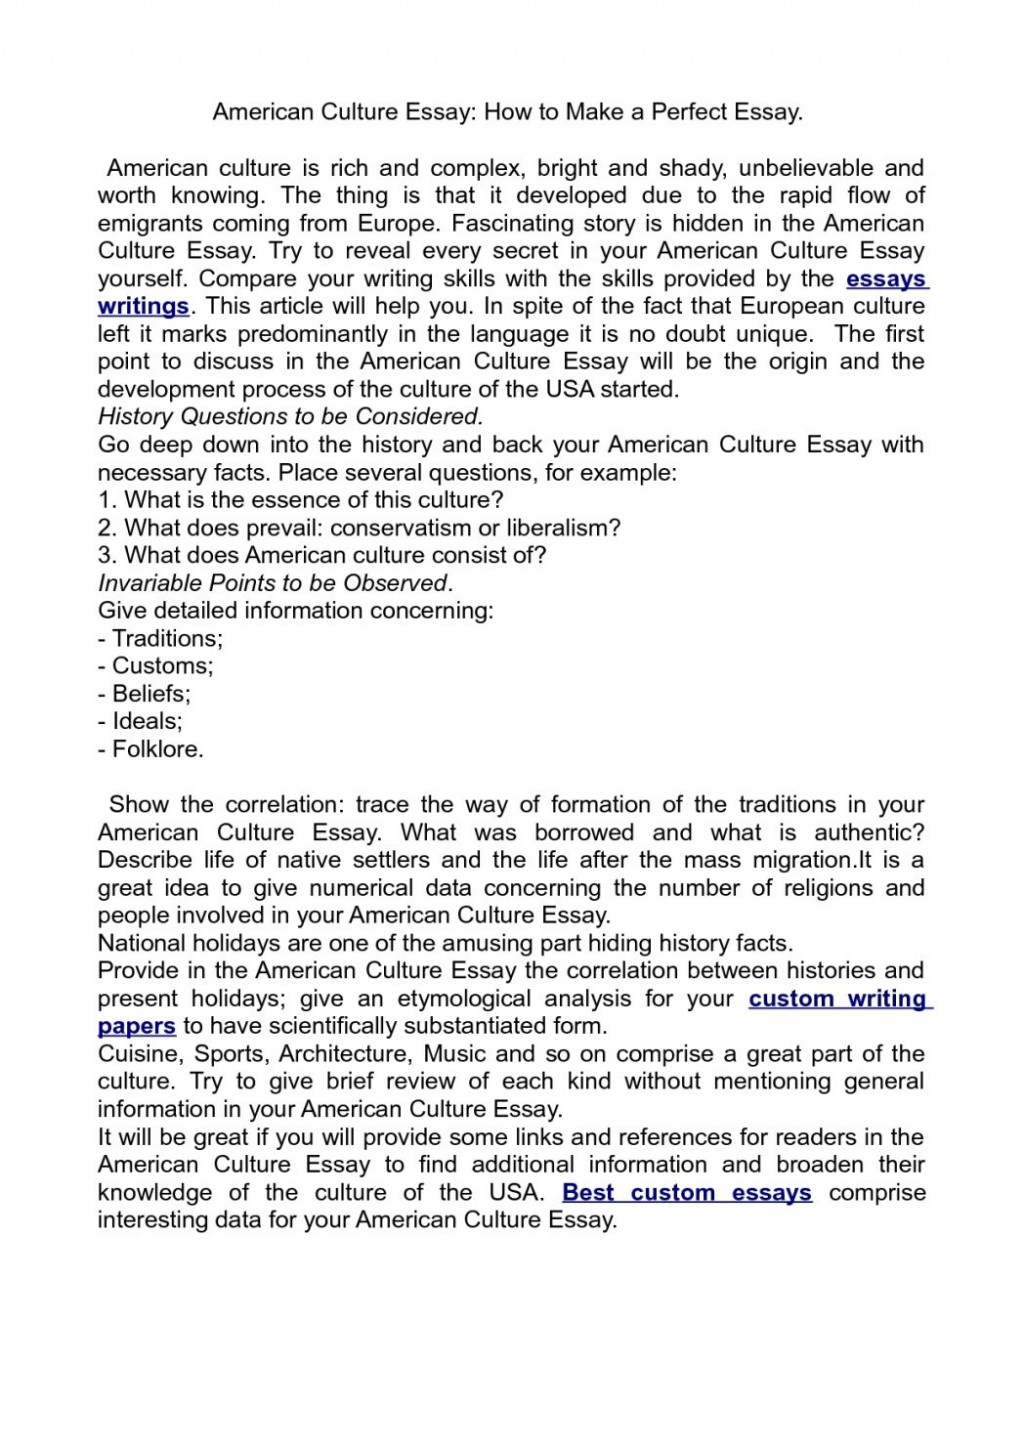 002 Pop Culture Essay Cultural Essays G On Working Together To Make Differences Ame Making 1048x1482 Top Controversial Topics Religion And Popular 2018 Large